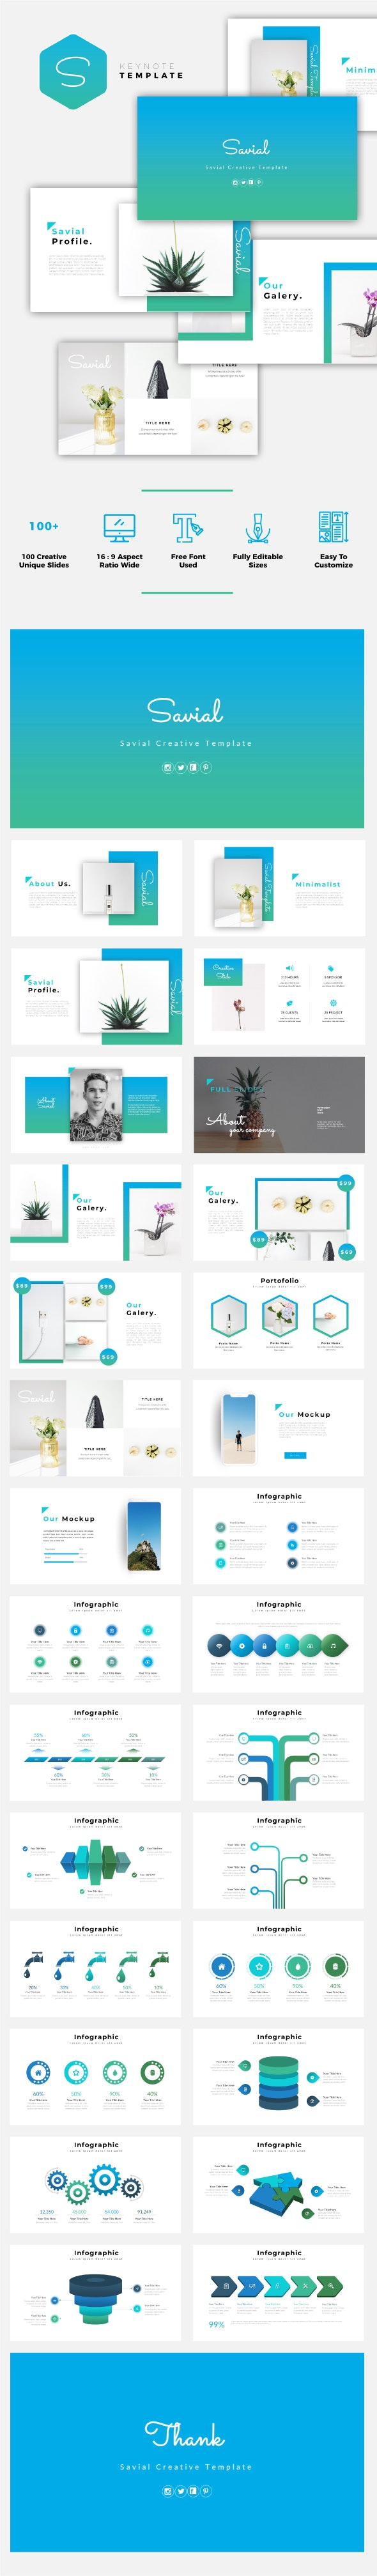 Savial - Creative Keynote Template - Miscellaneous Keynote Templates